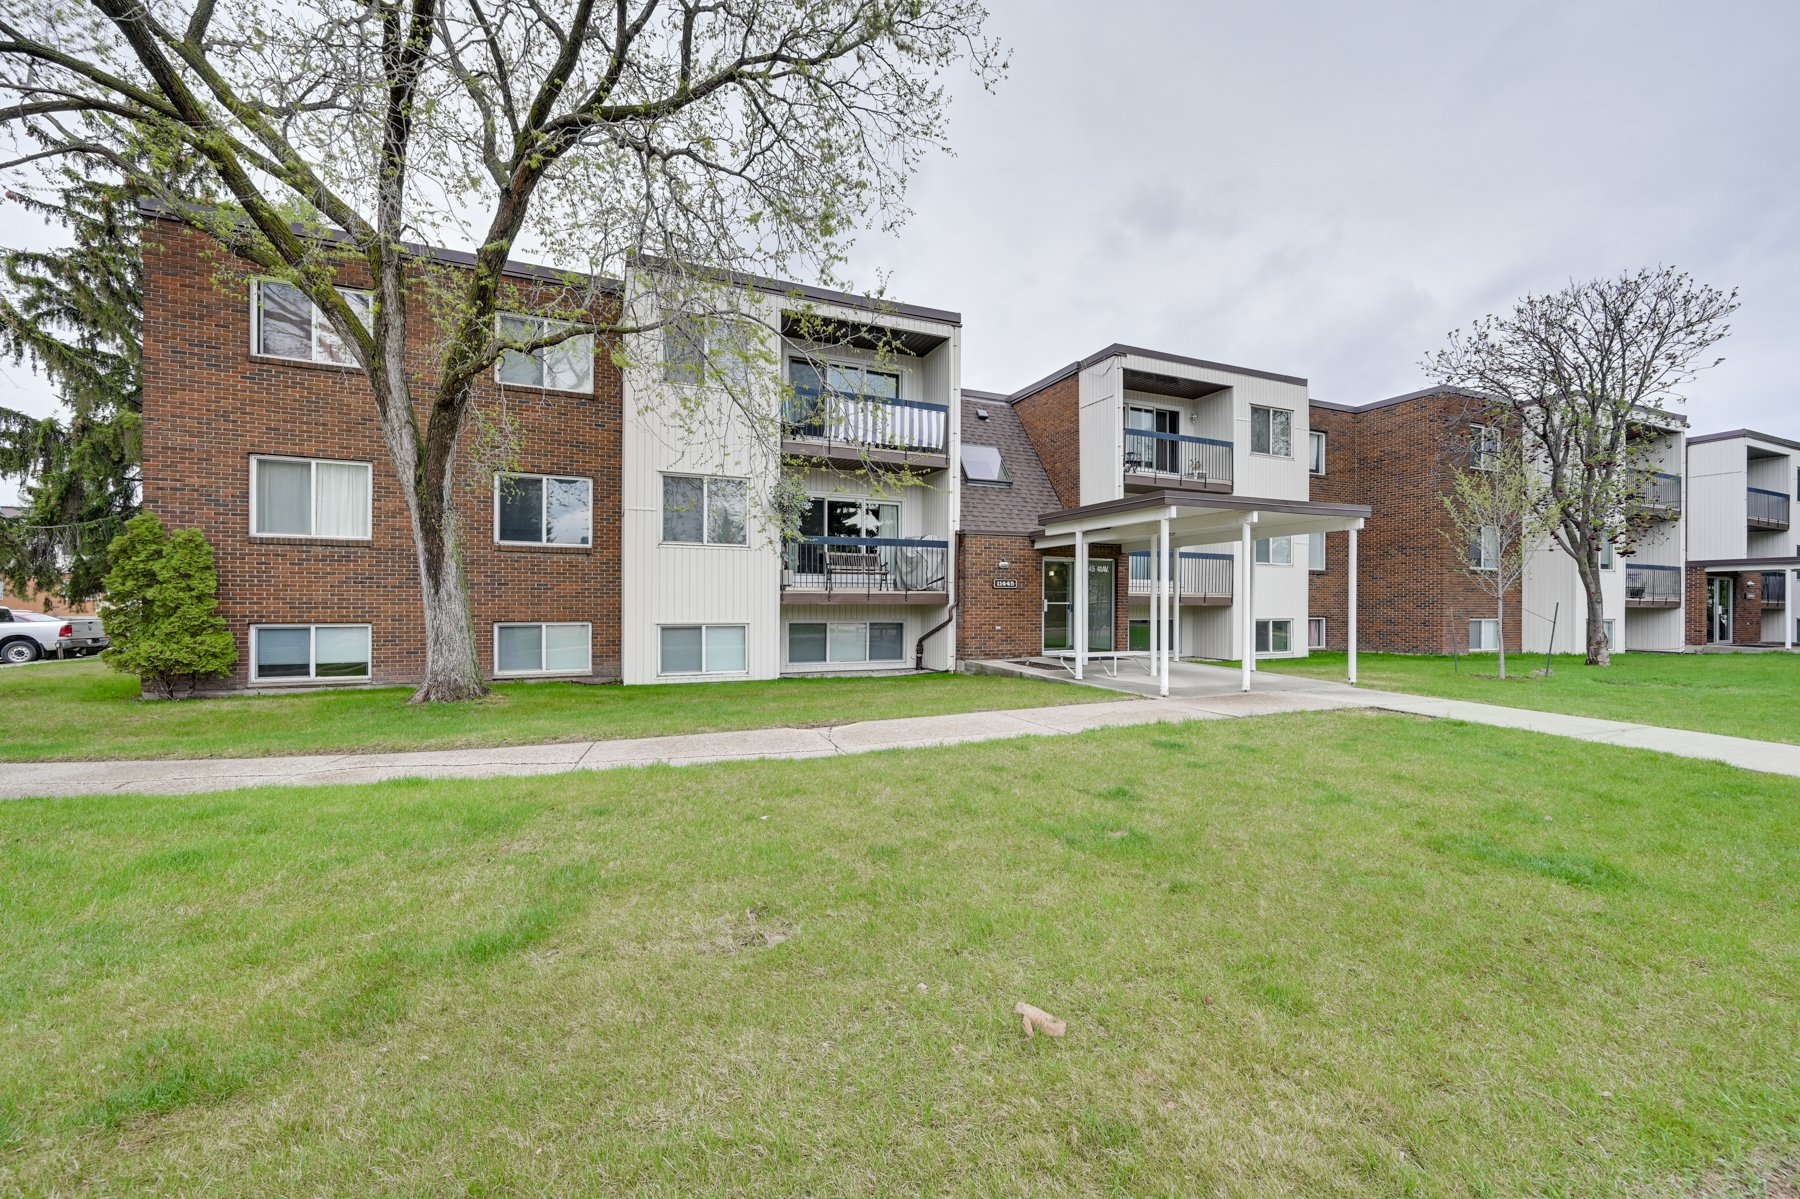 Main Photo: 107, 11445 41Ave in Edmonton: Royal Gardens Condo for sale : MLS®# E4157234